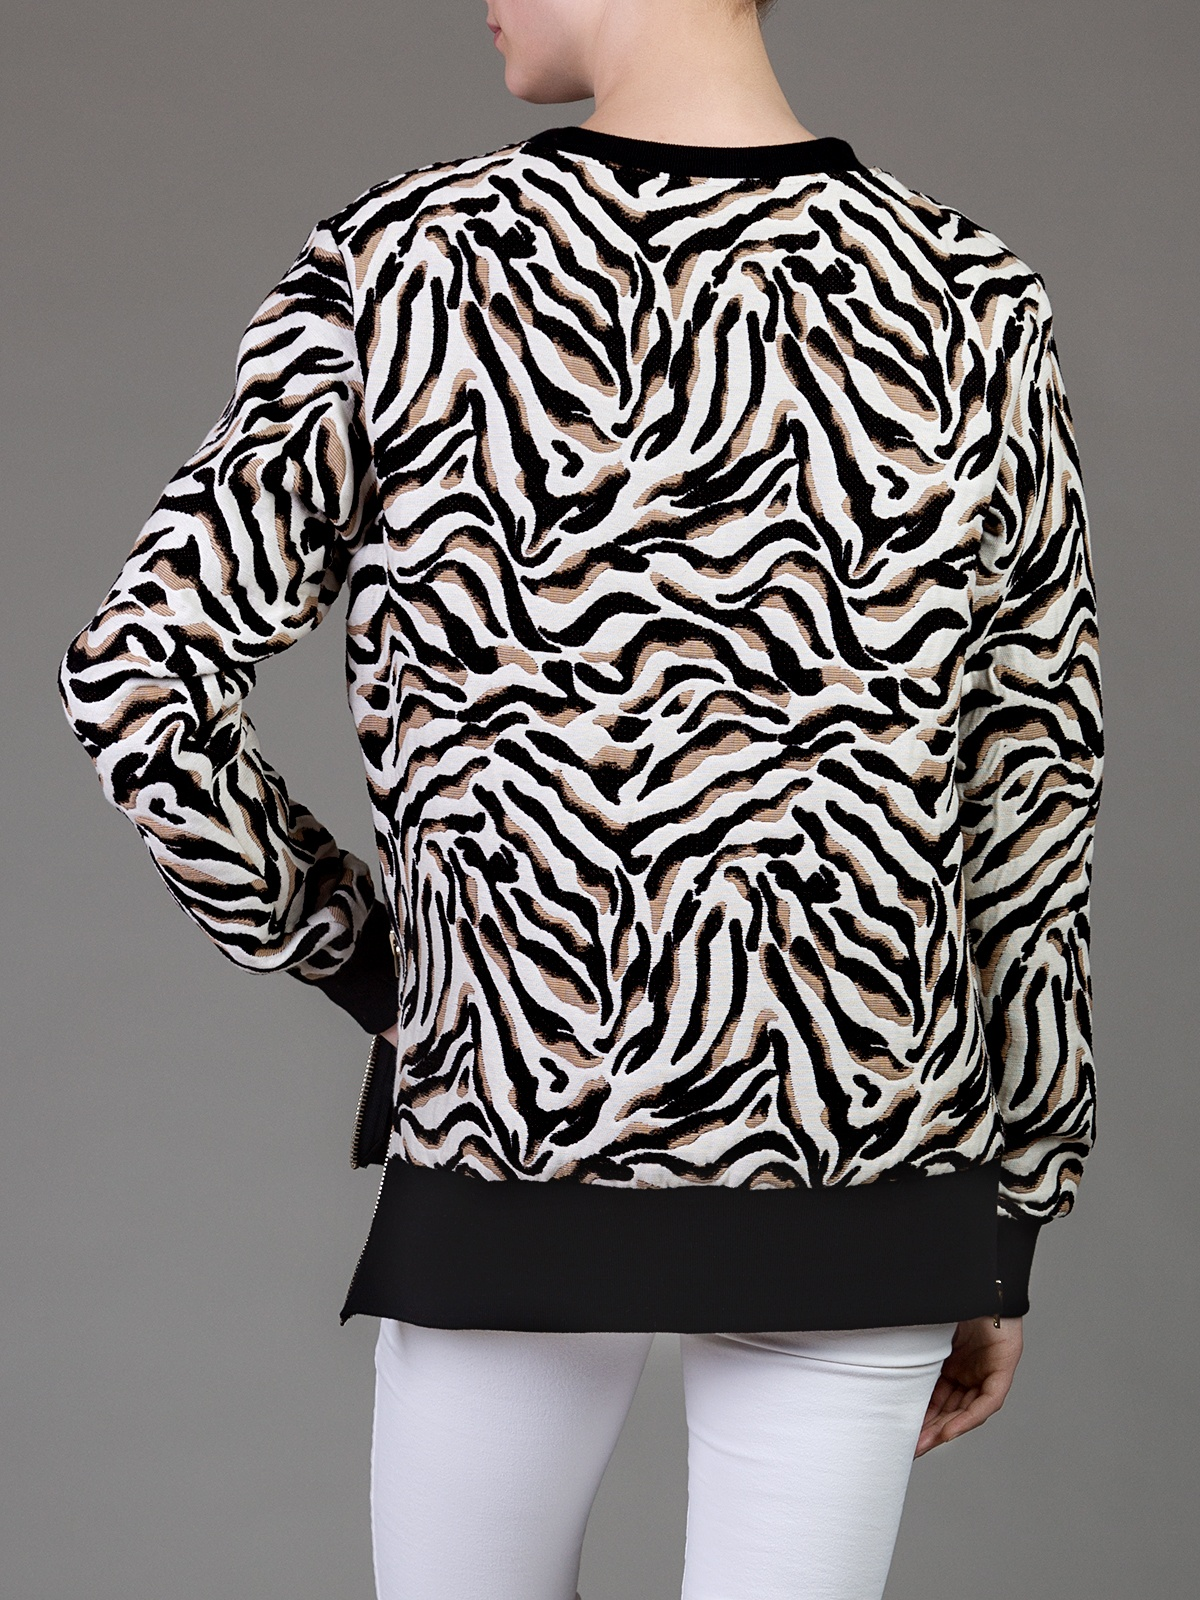 Jacquard embroidered tiger oversized sweater